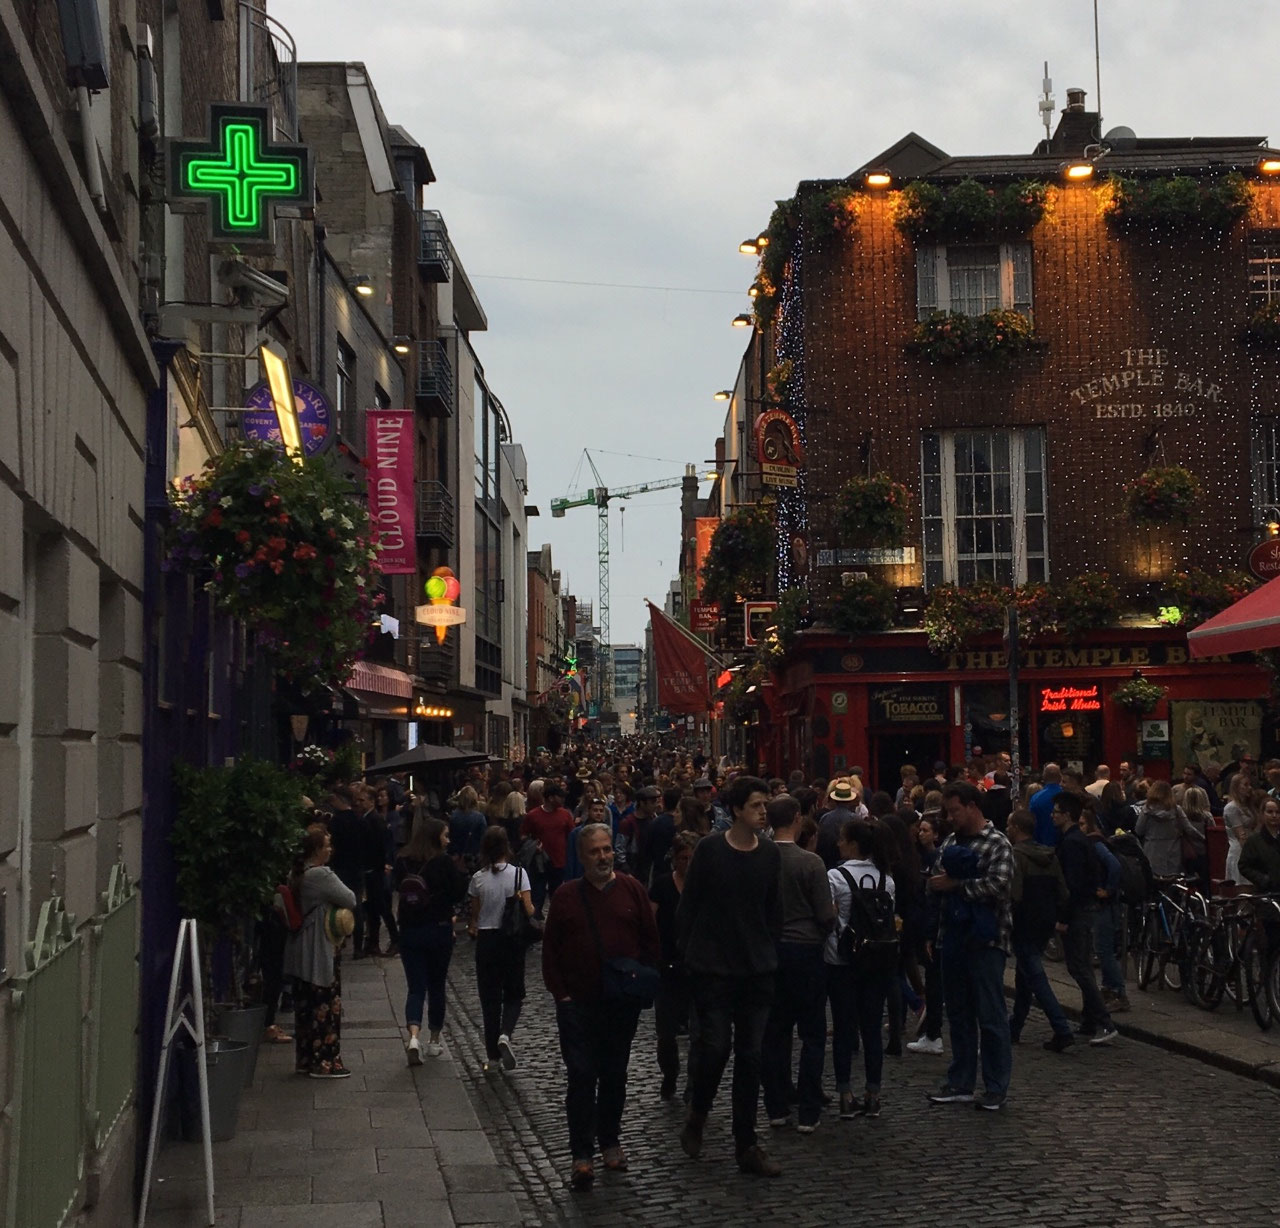 A packed house in Temple Bar